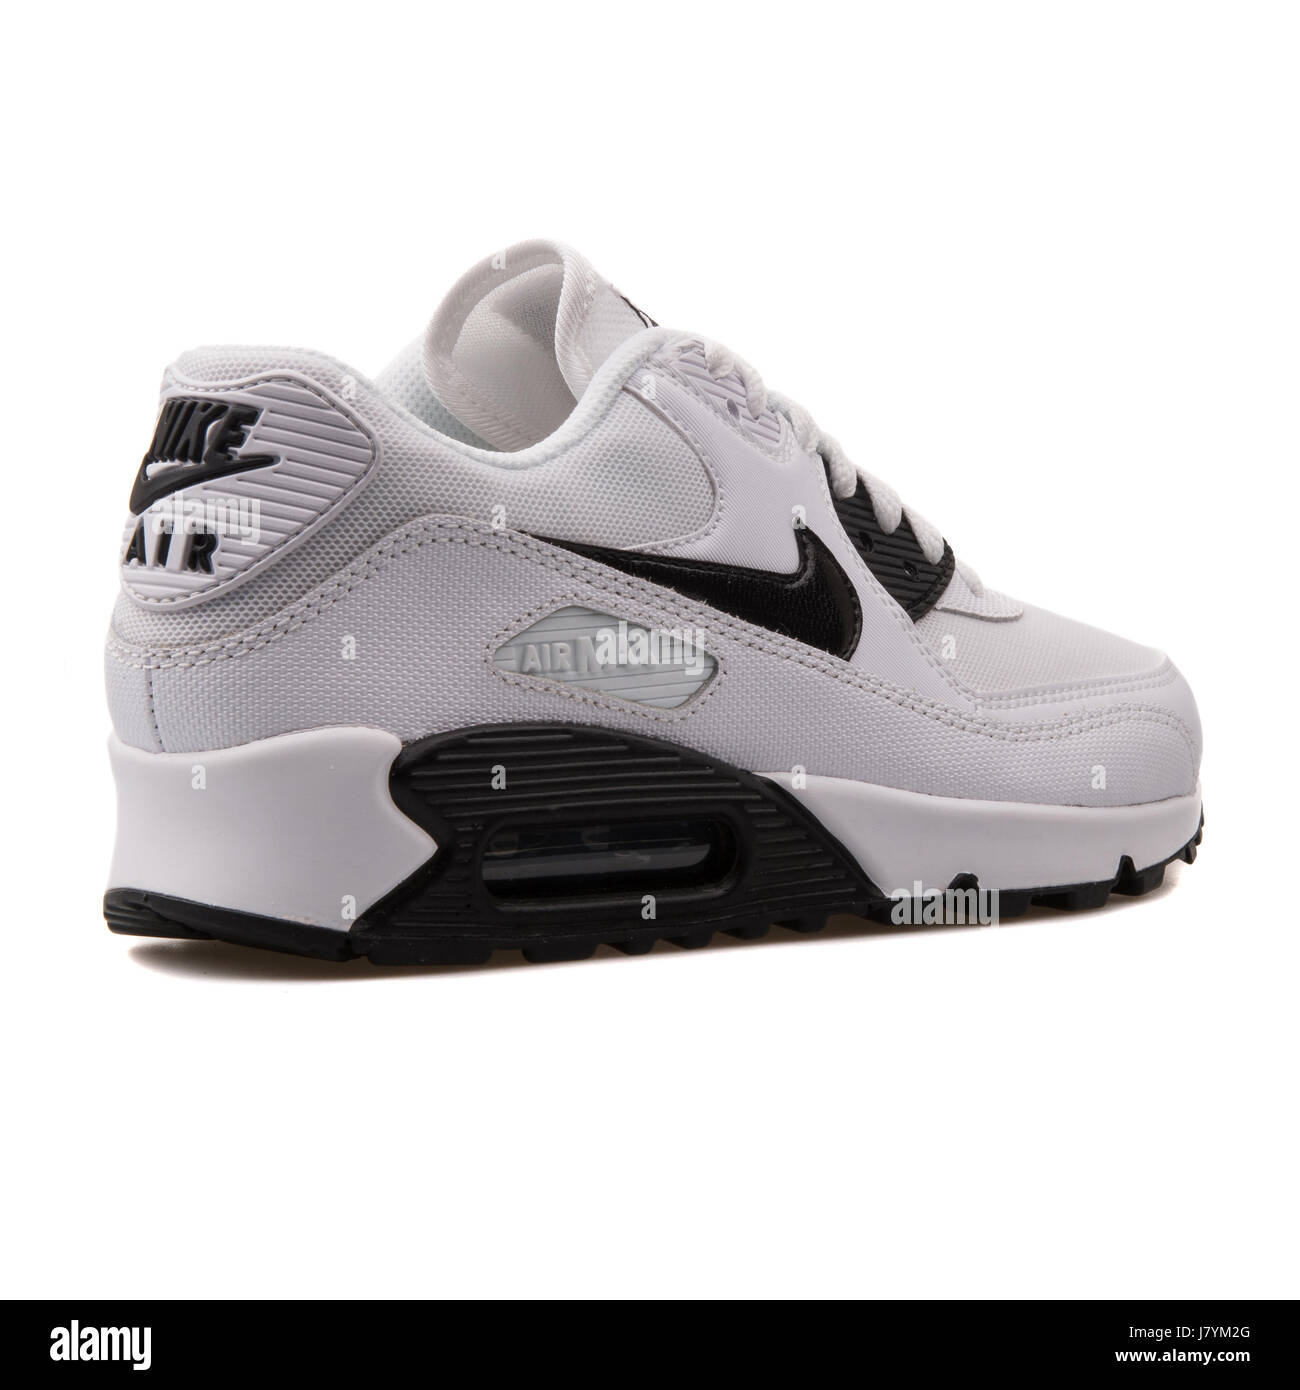 Nike WMNS Air Max 90 Essential White Women's Sports Sneakers